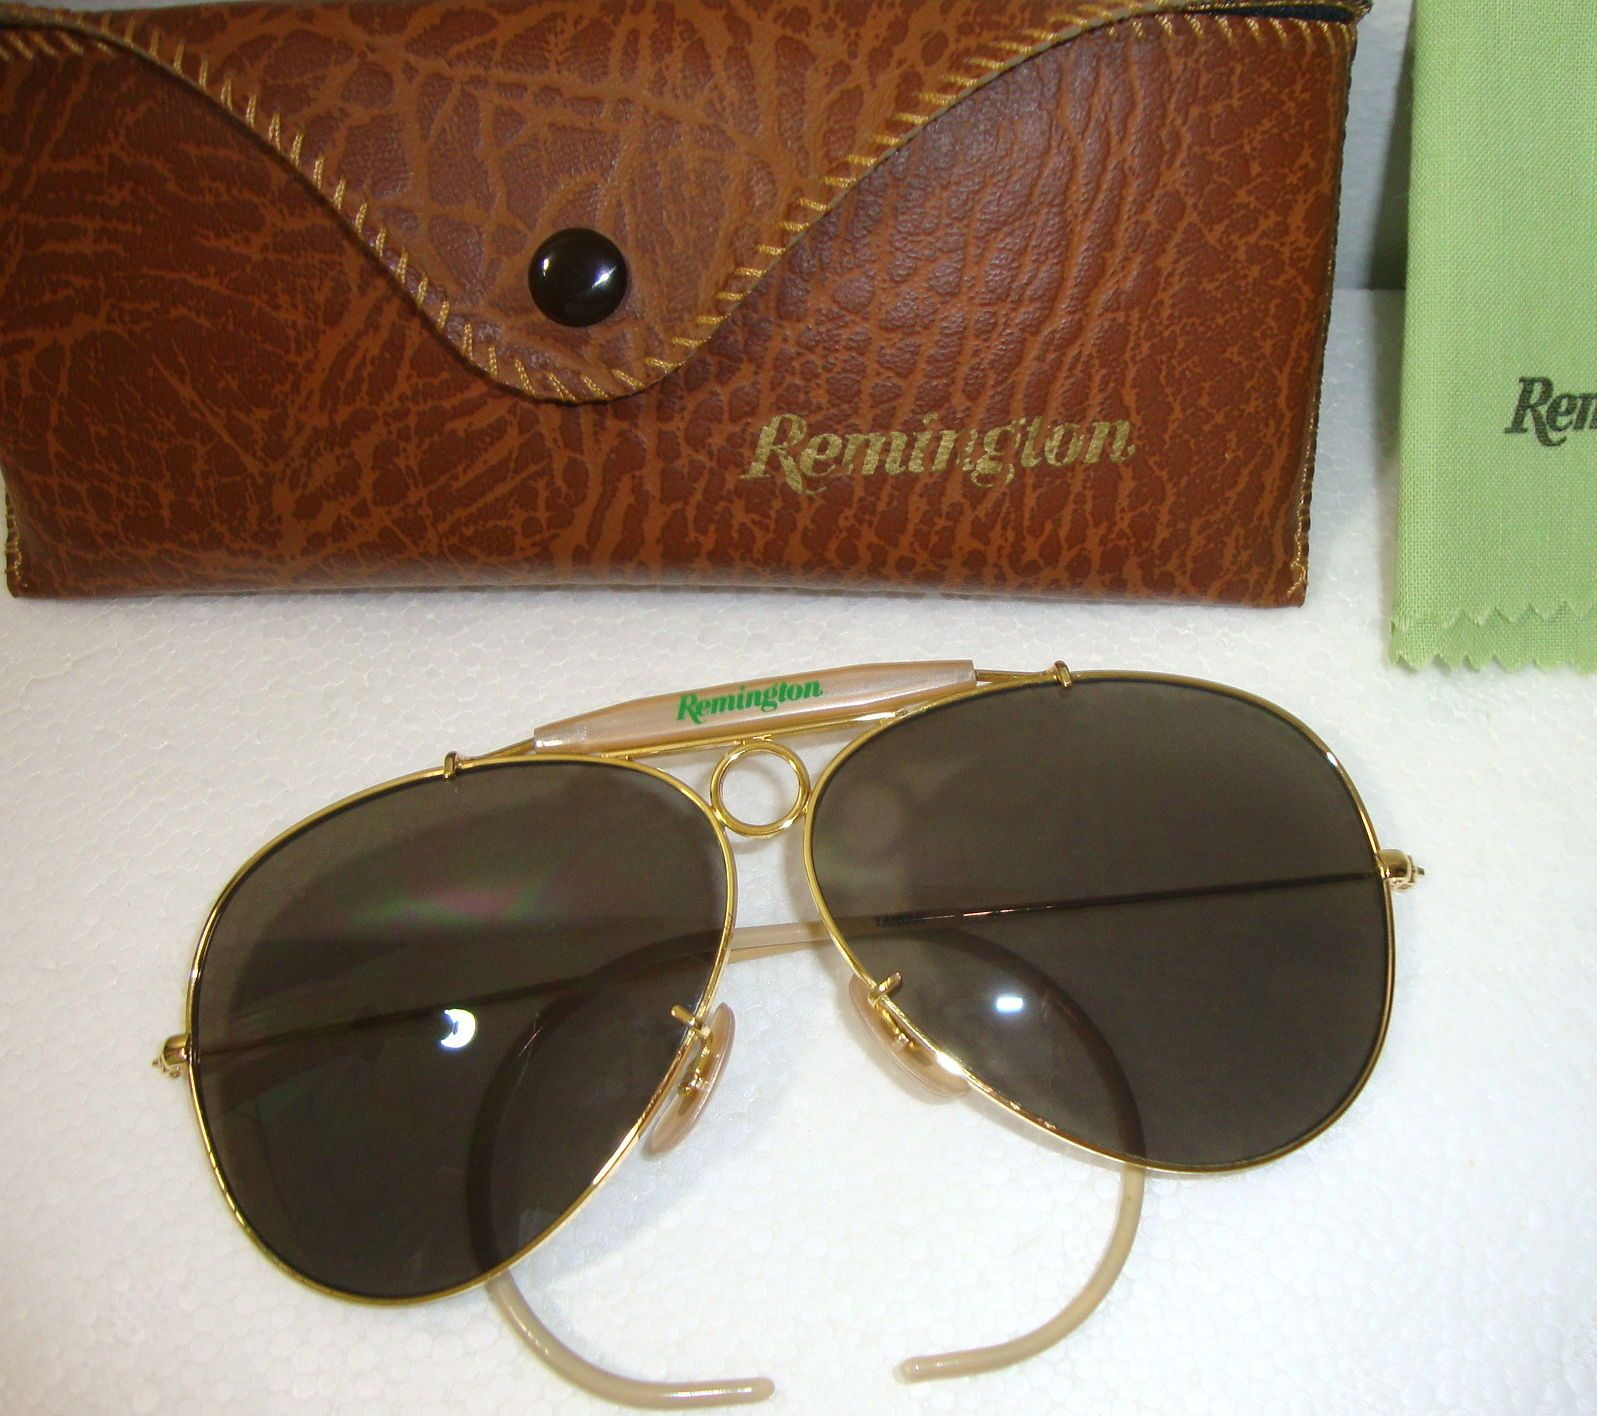 425f9f2b9d Vtg Remington Bullet Hole Gold Rim Aviator Sunglasses Shooting Glasses w  Case